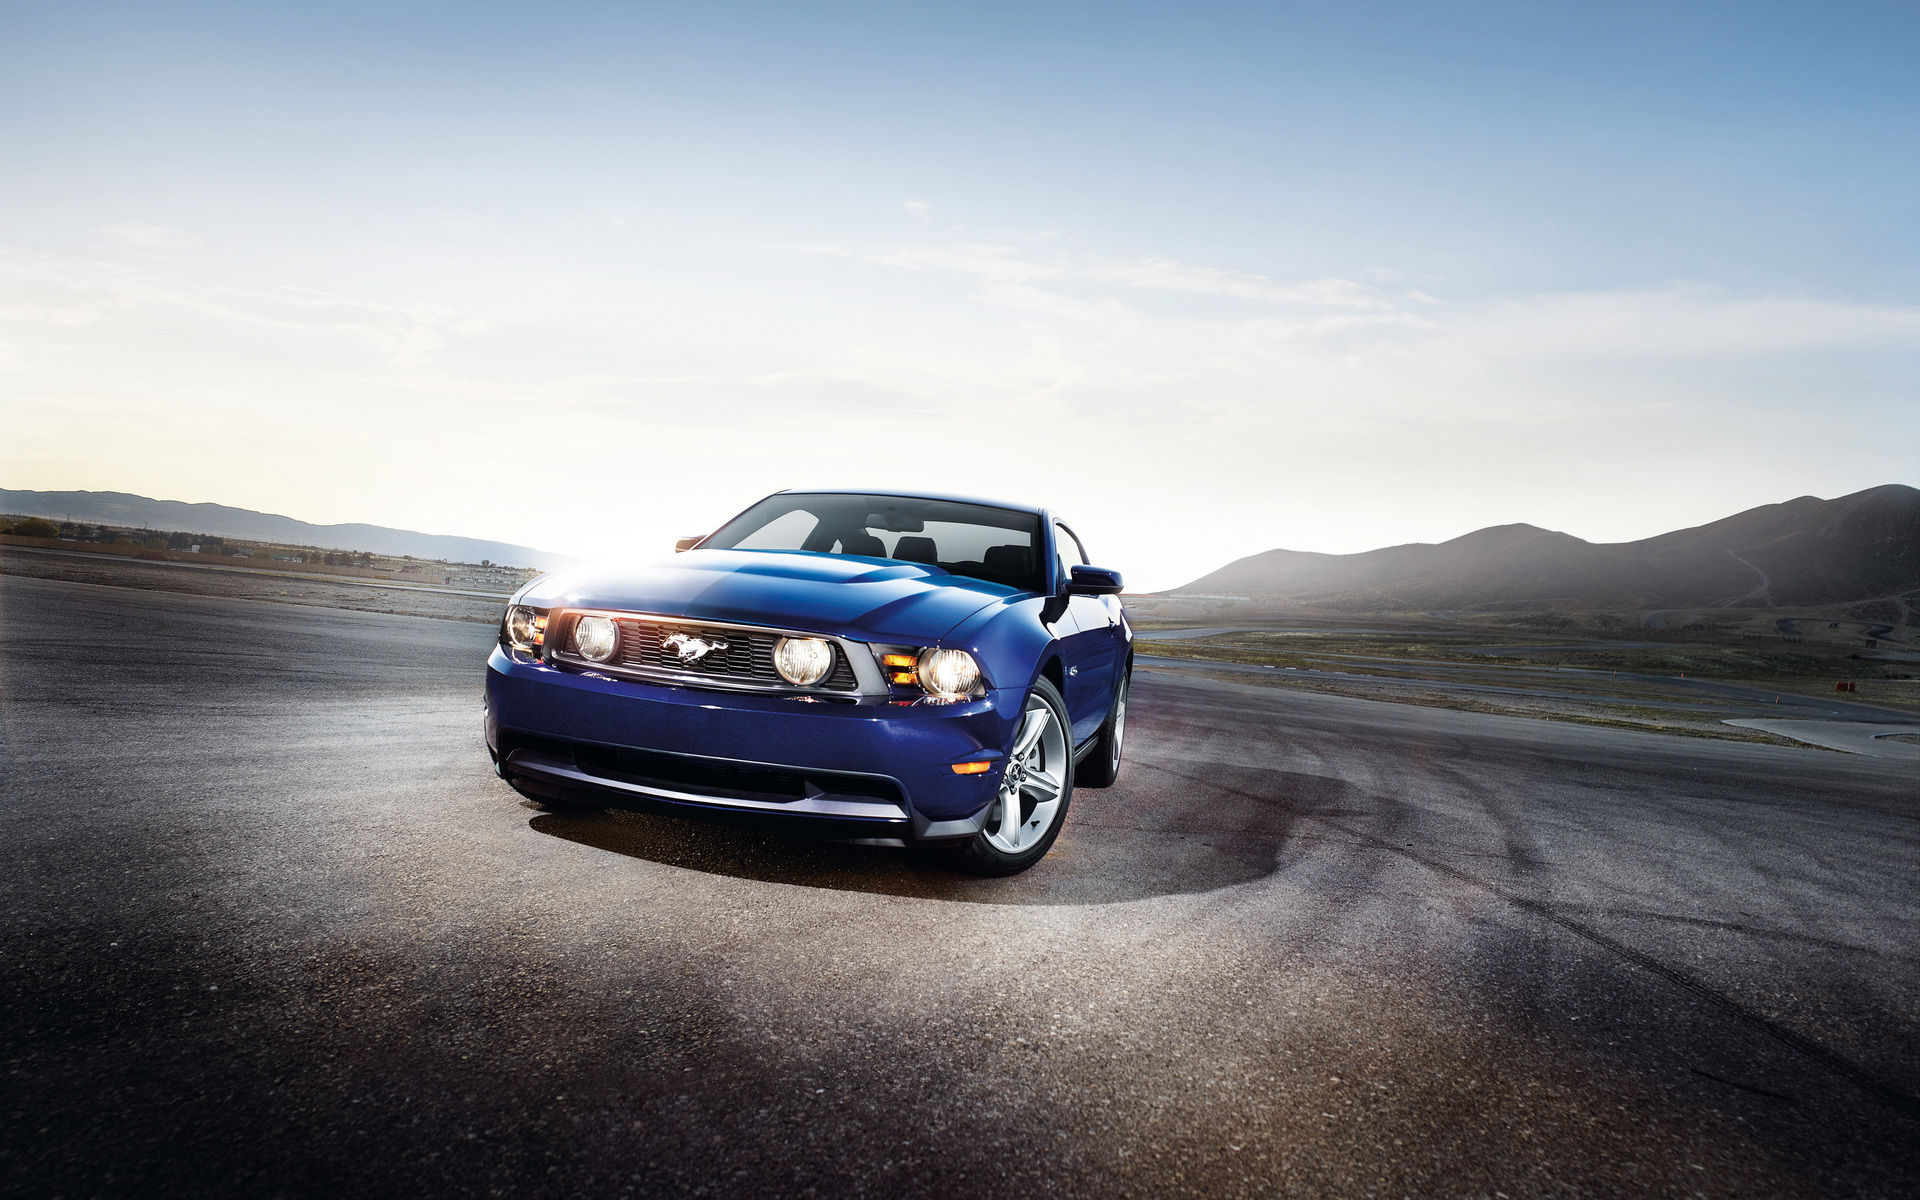 Ford Mustang Shelby Gt500 Eleanor Wallpaper Hd Ford Mustang Wallpaper Cool Cars 641 Wallpaper